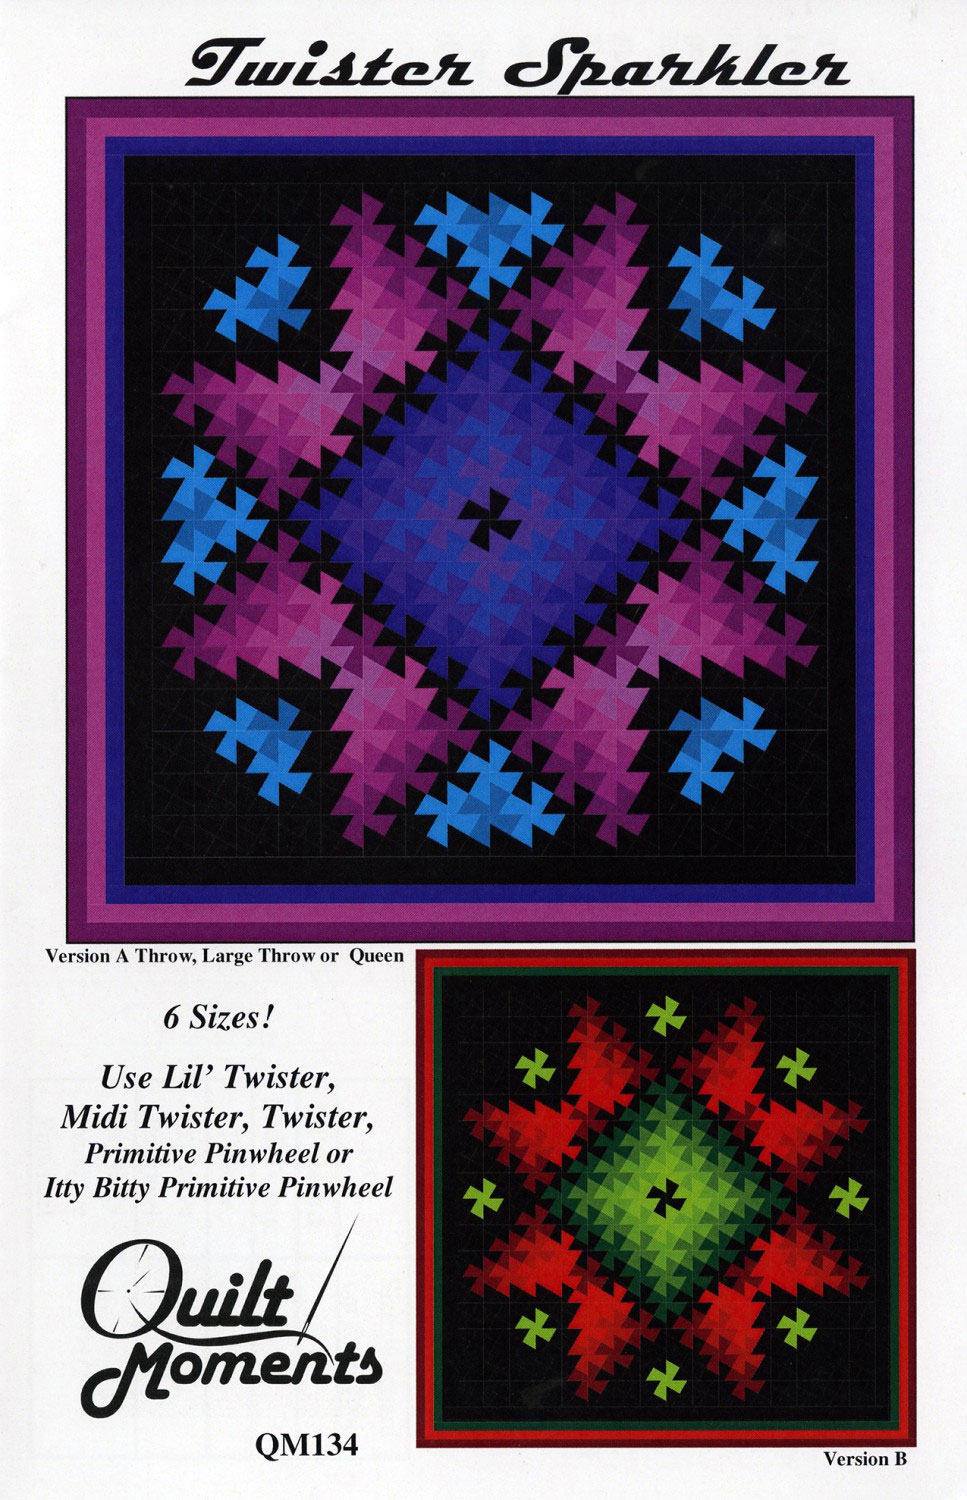 Twister-Sparkler-sewing-pattern-Quilt-Moments-front